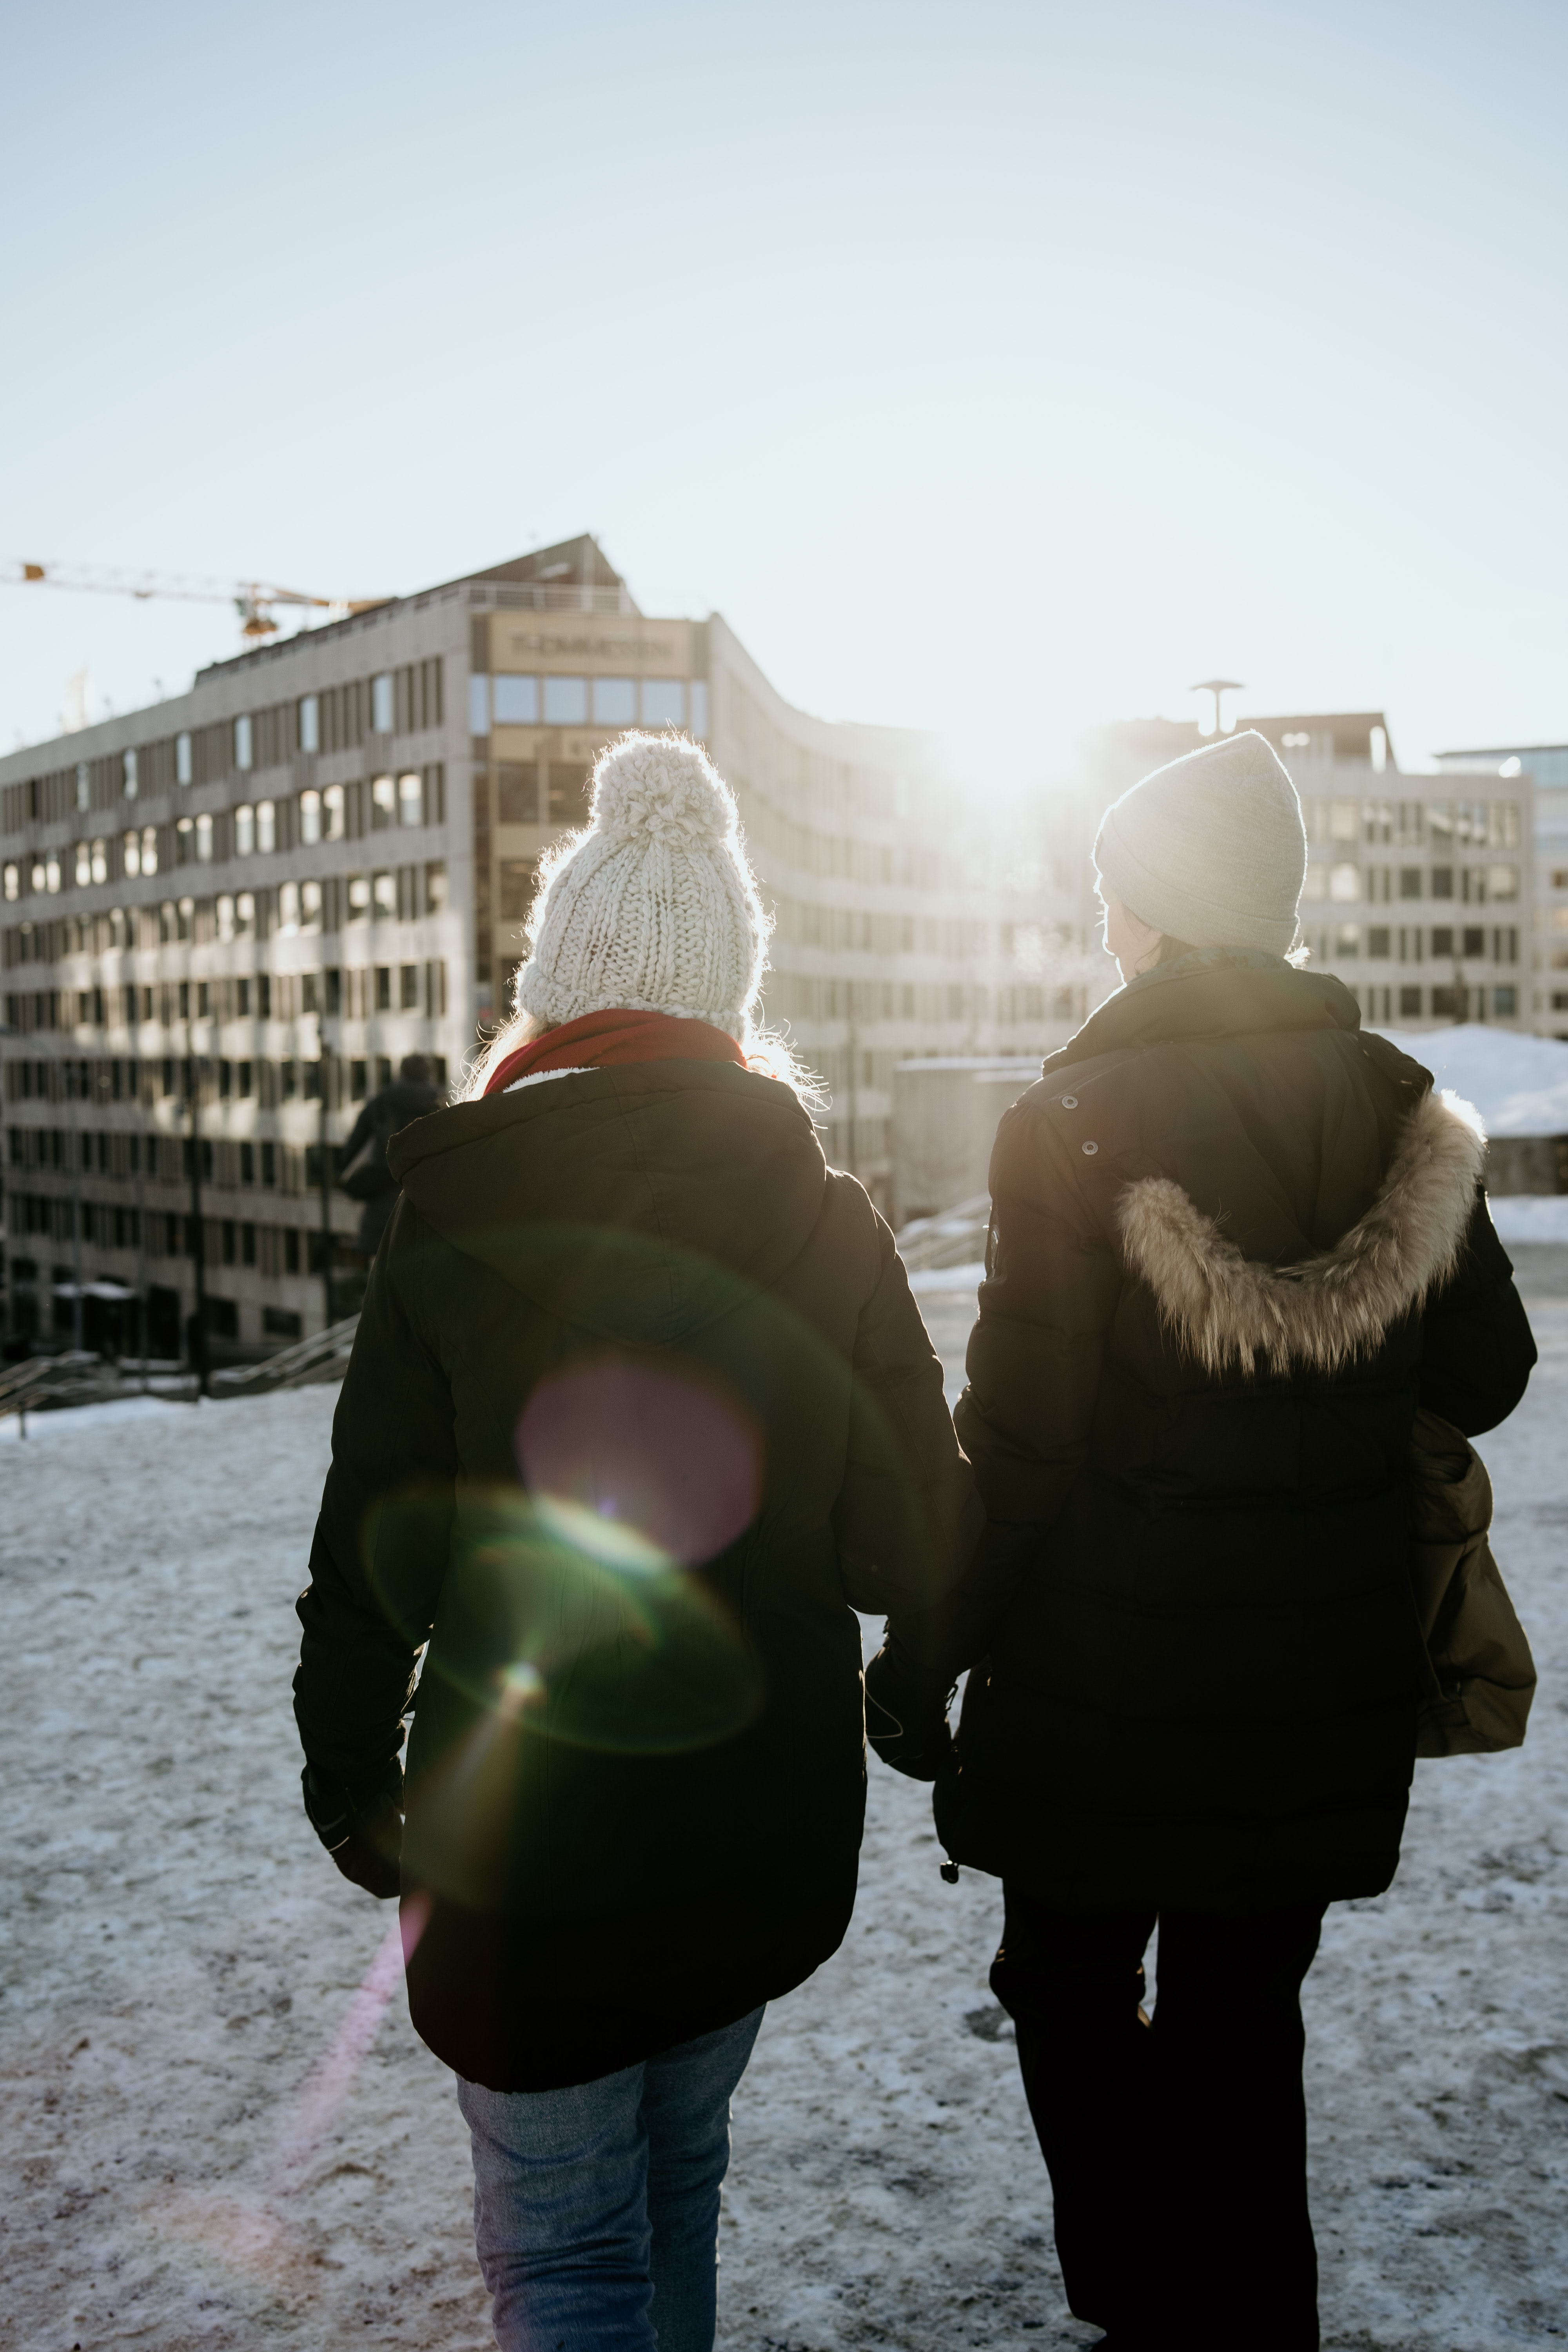 two person wearing jacket walking on snow covered field during daytime